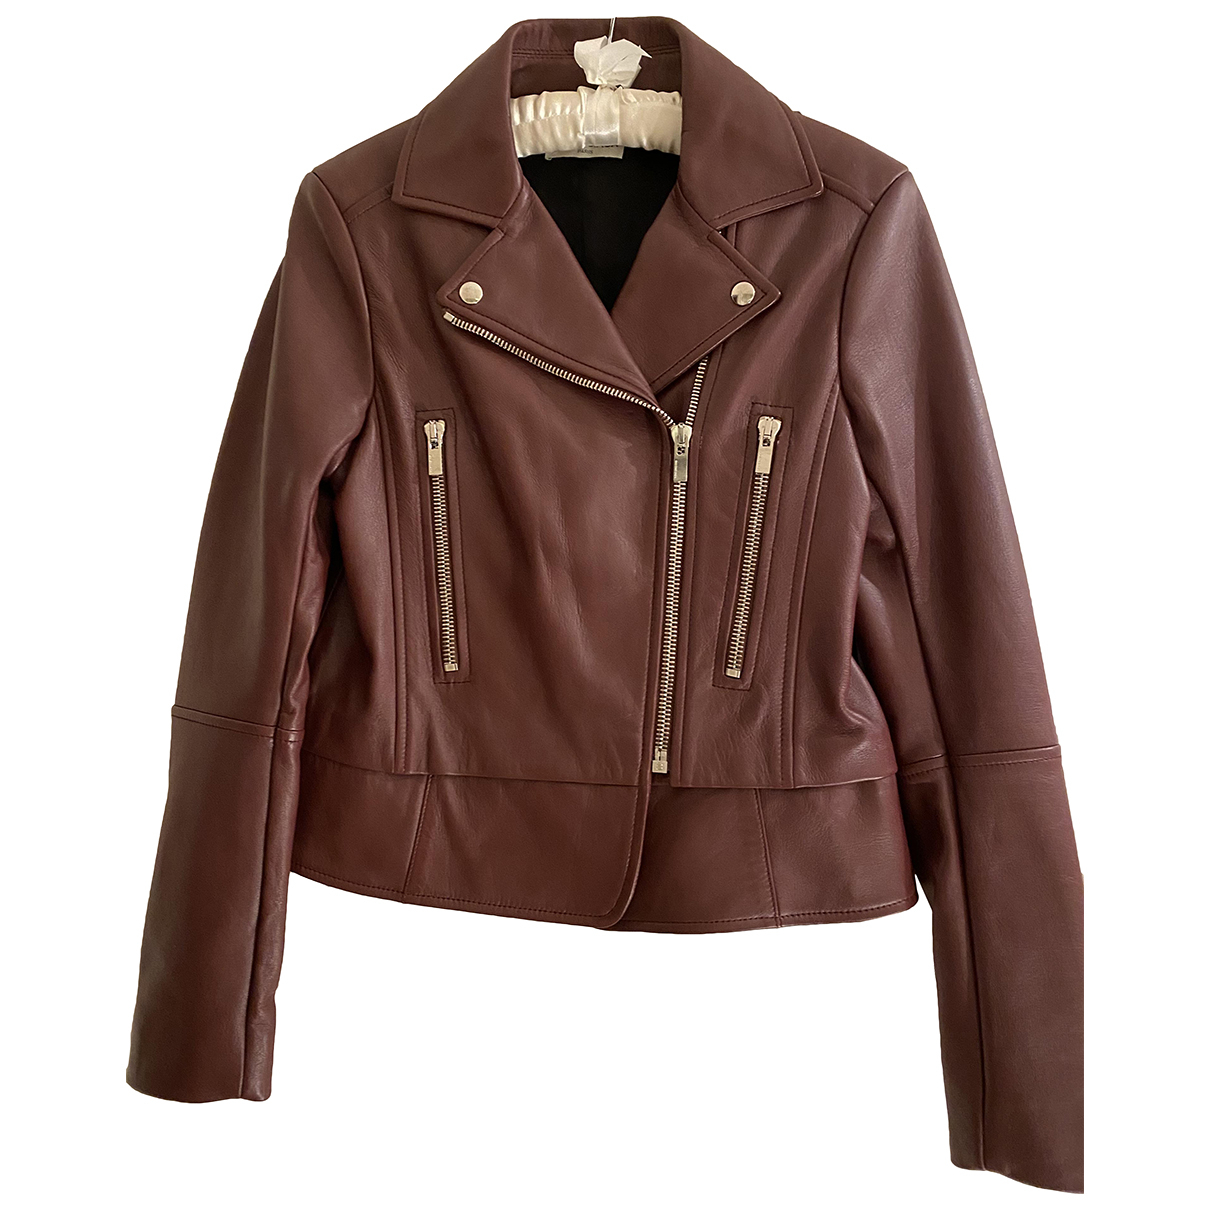 Balenciaga N Burgundy Leather jacket for Women 42 FR